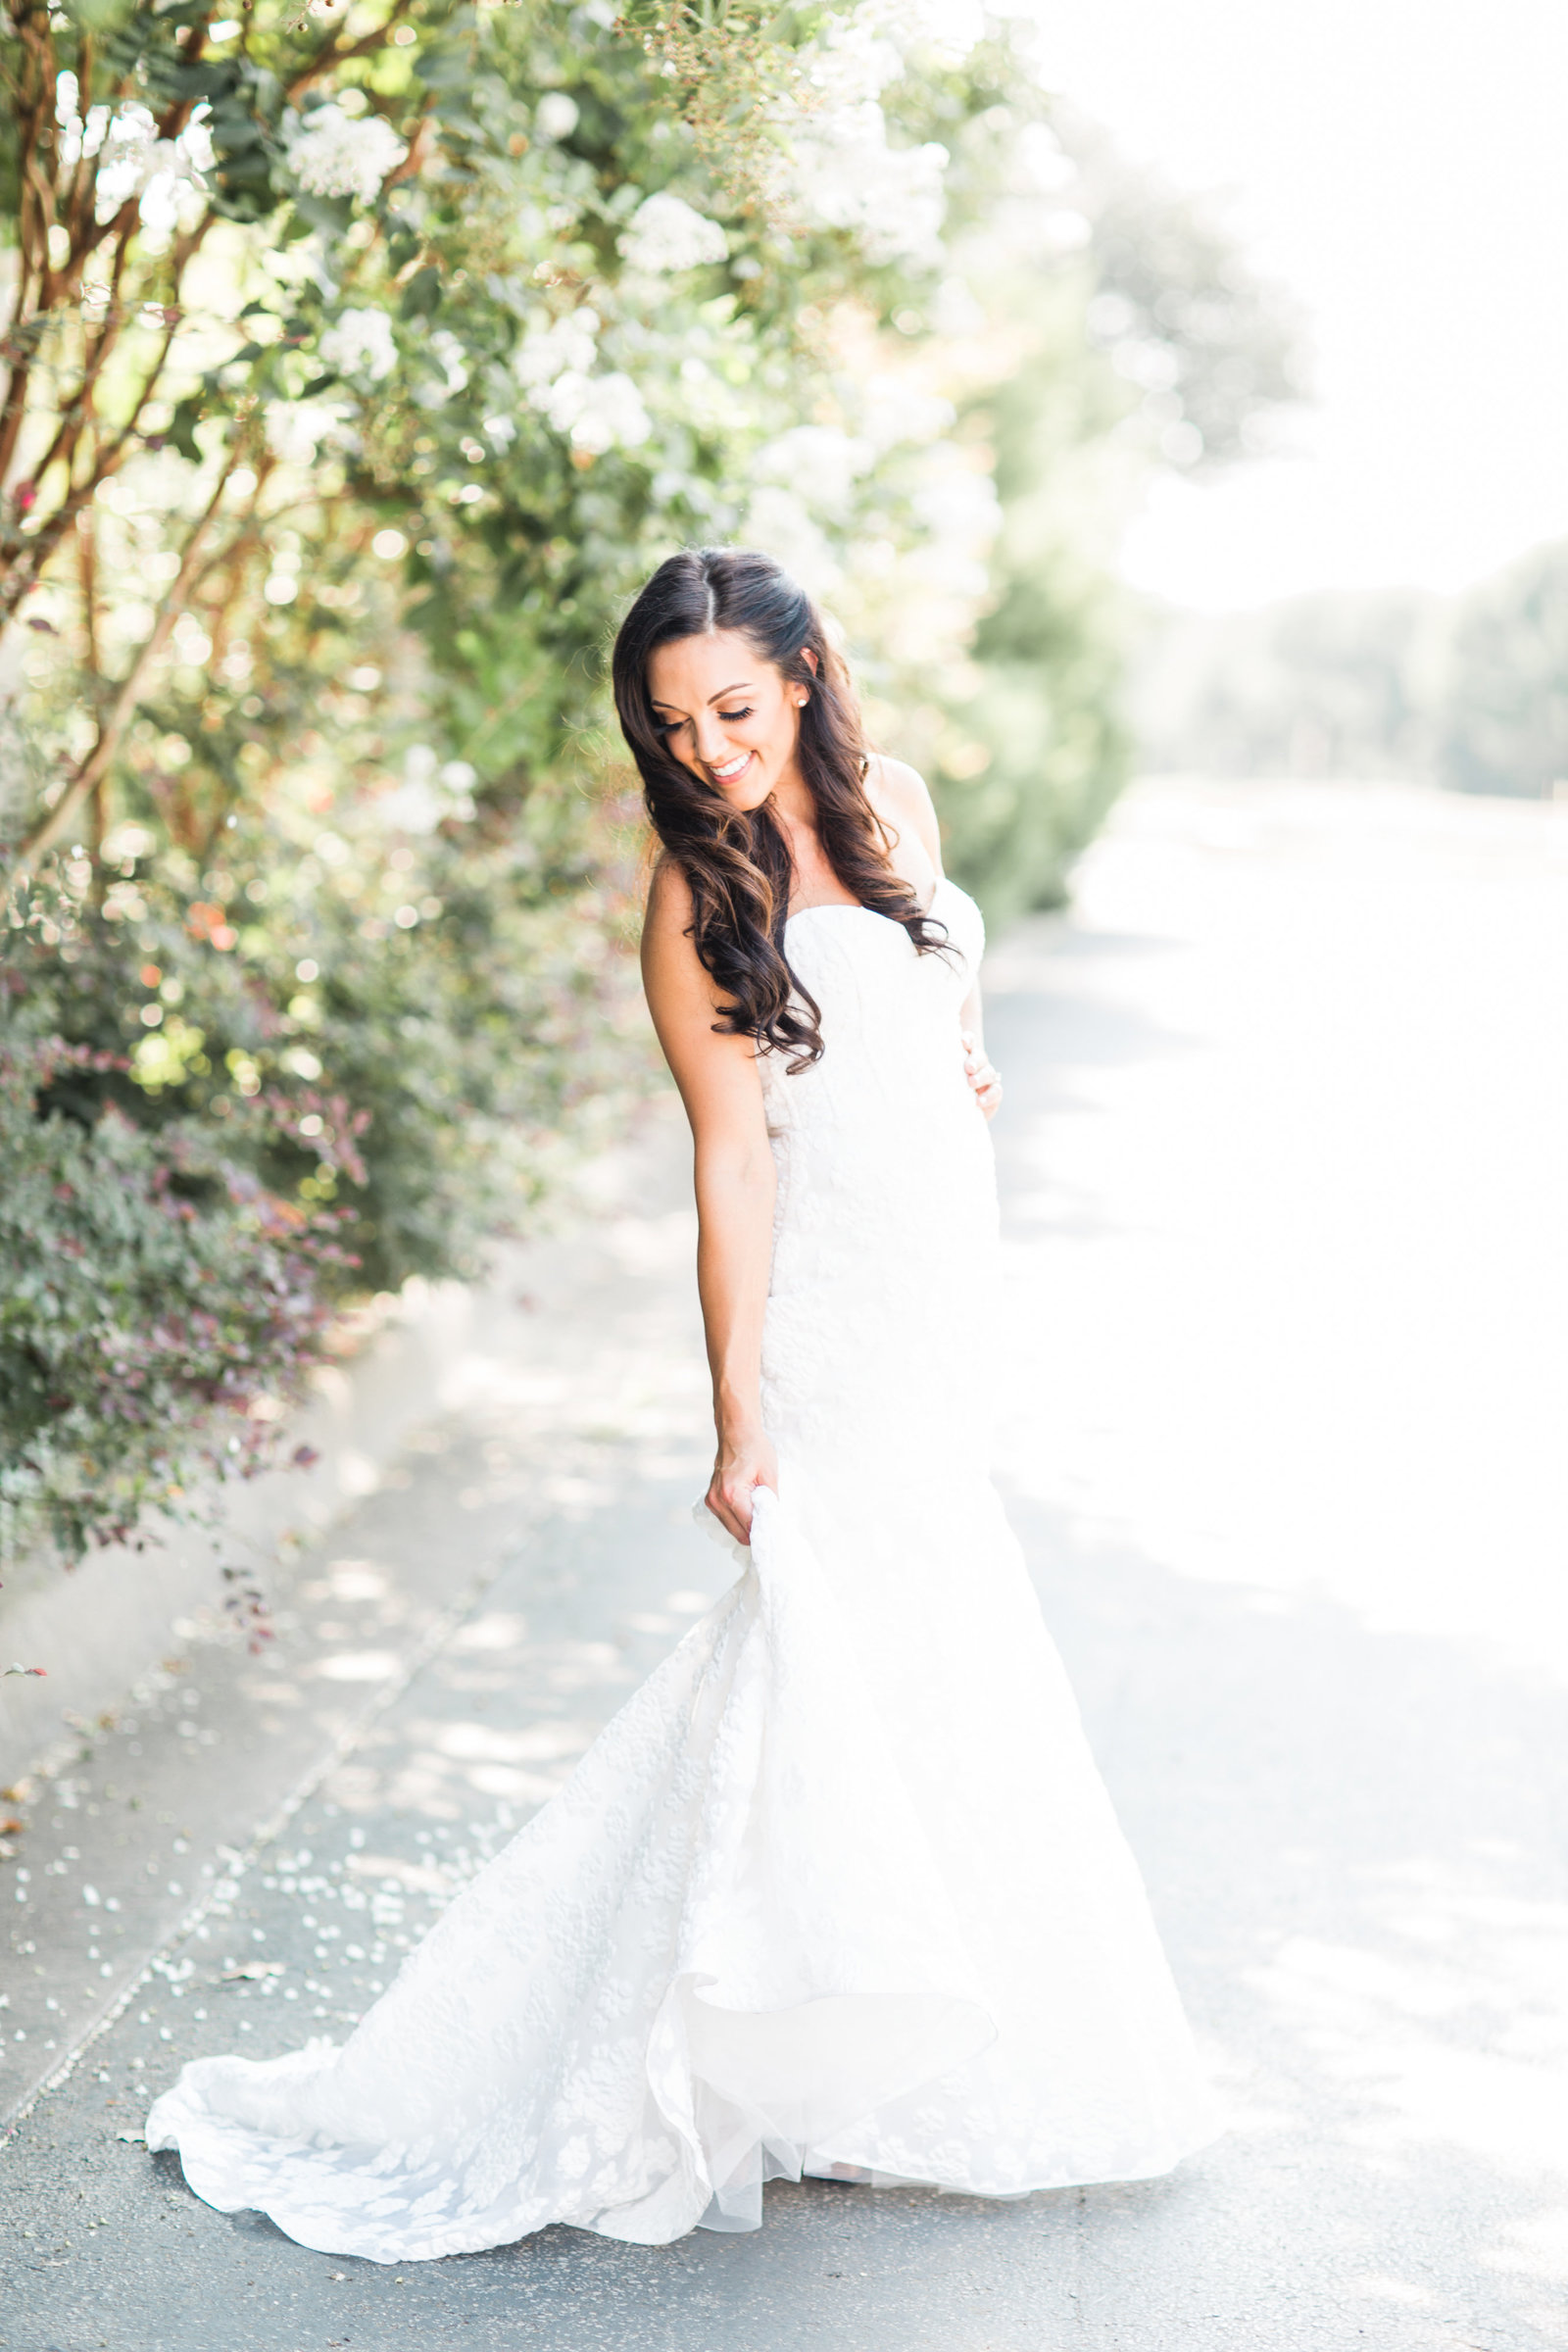 stunning bride in wedding gown outdoor wedding